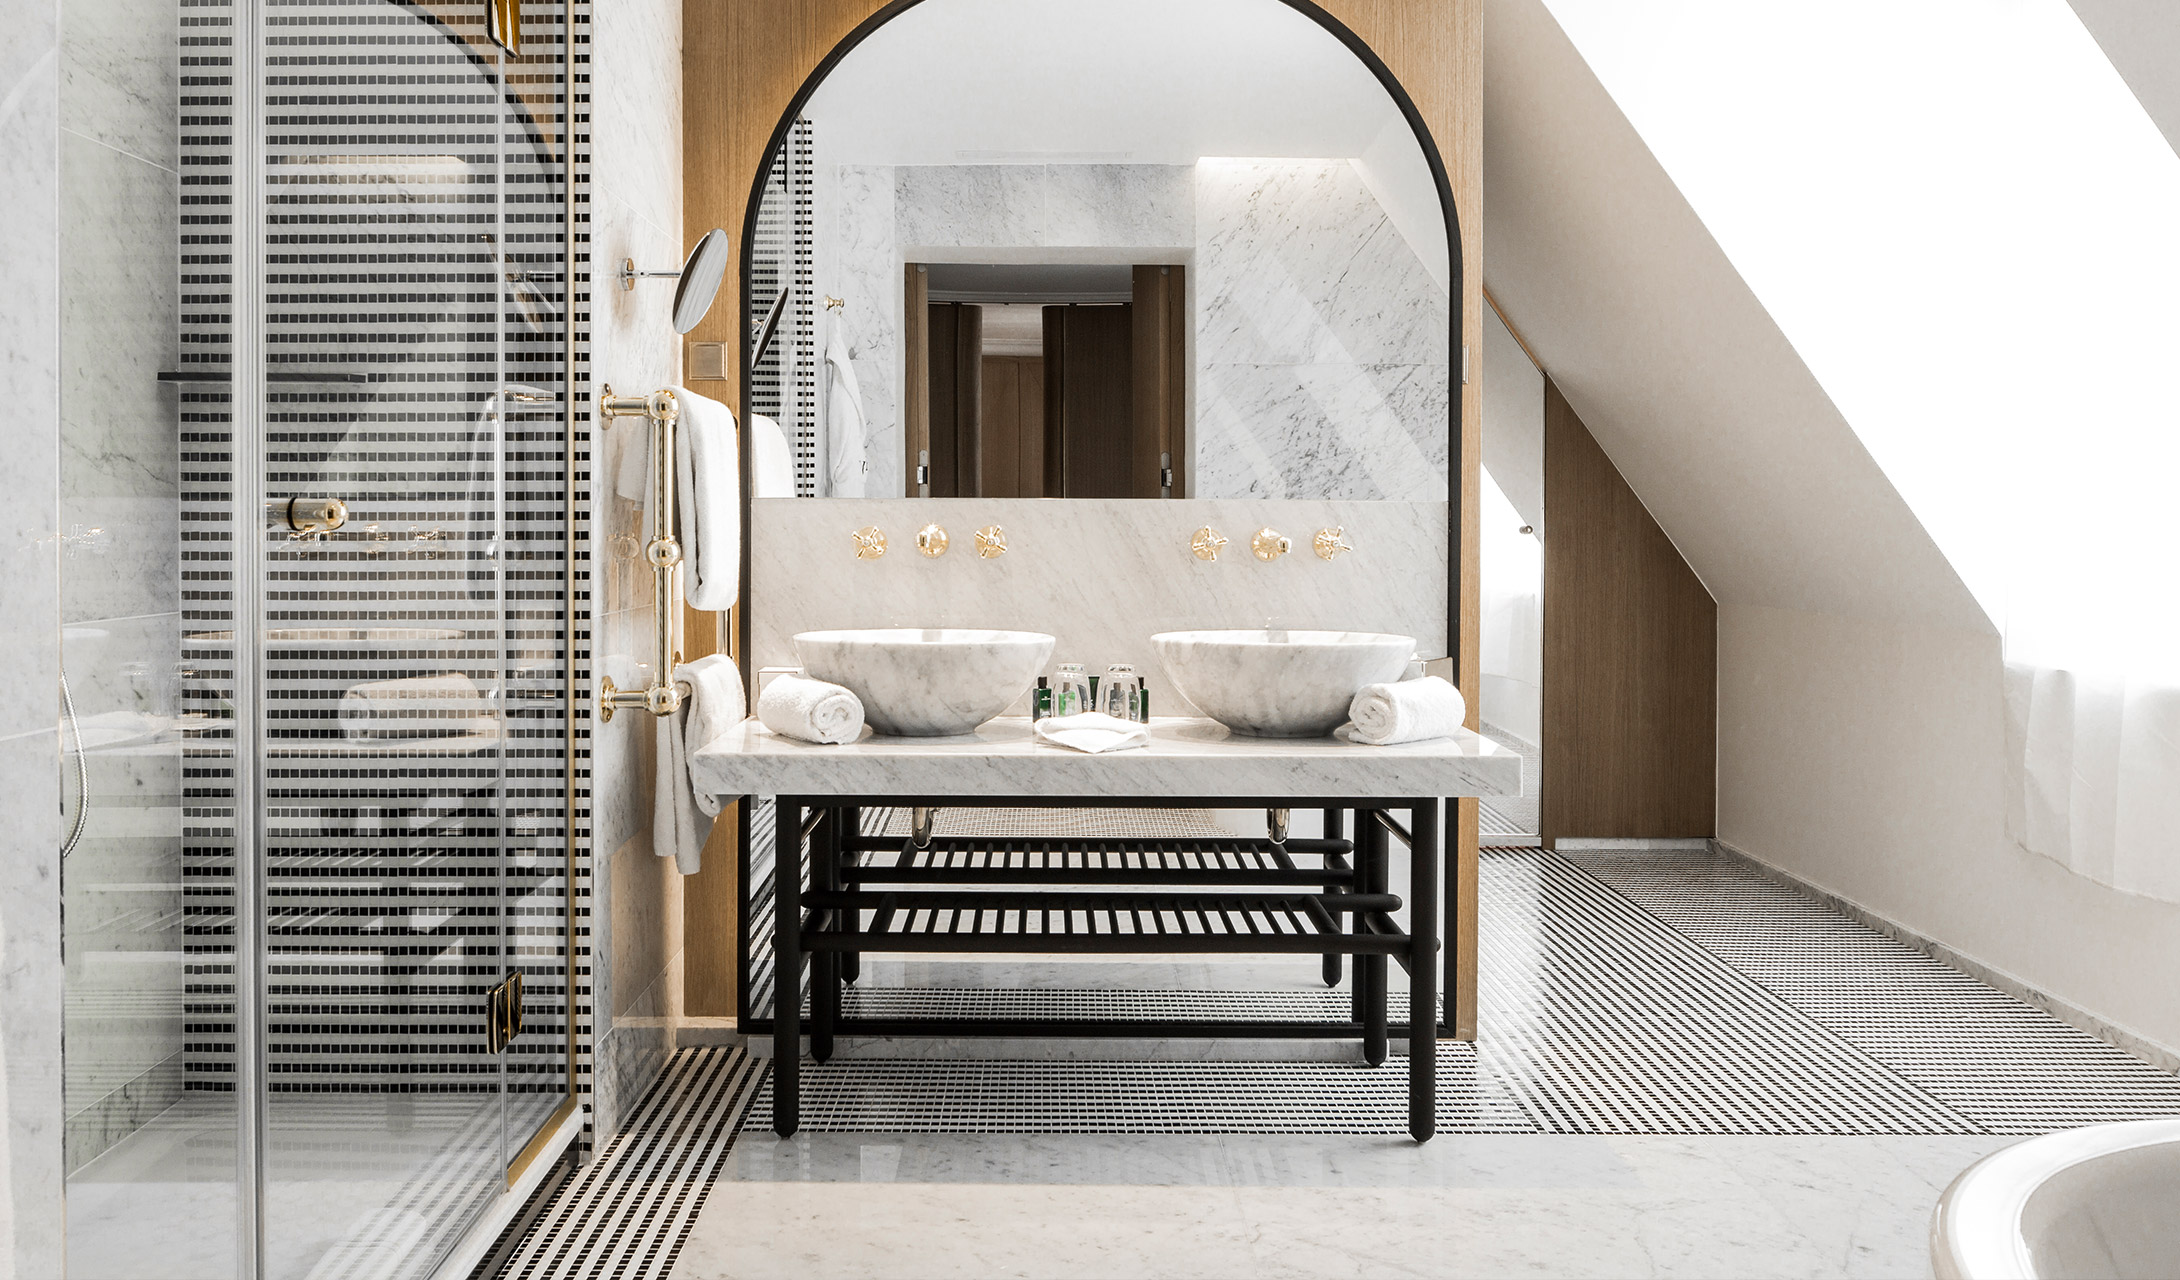 Hotel vernet paris france design hotels for Designhotel q